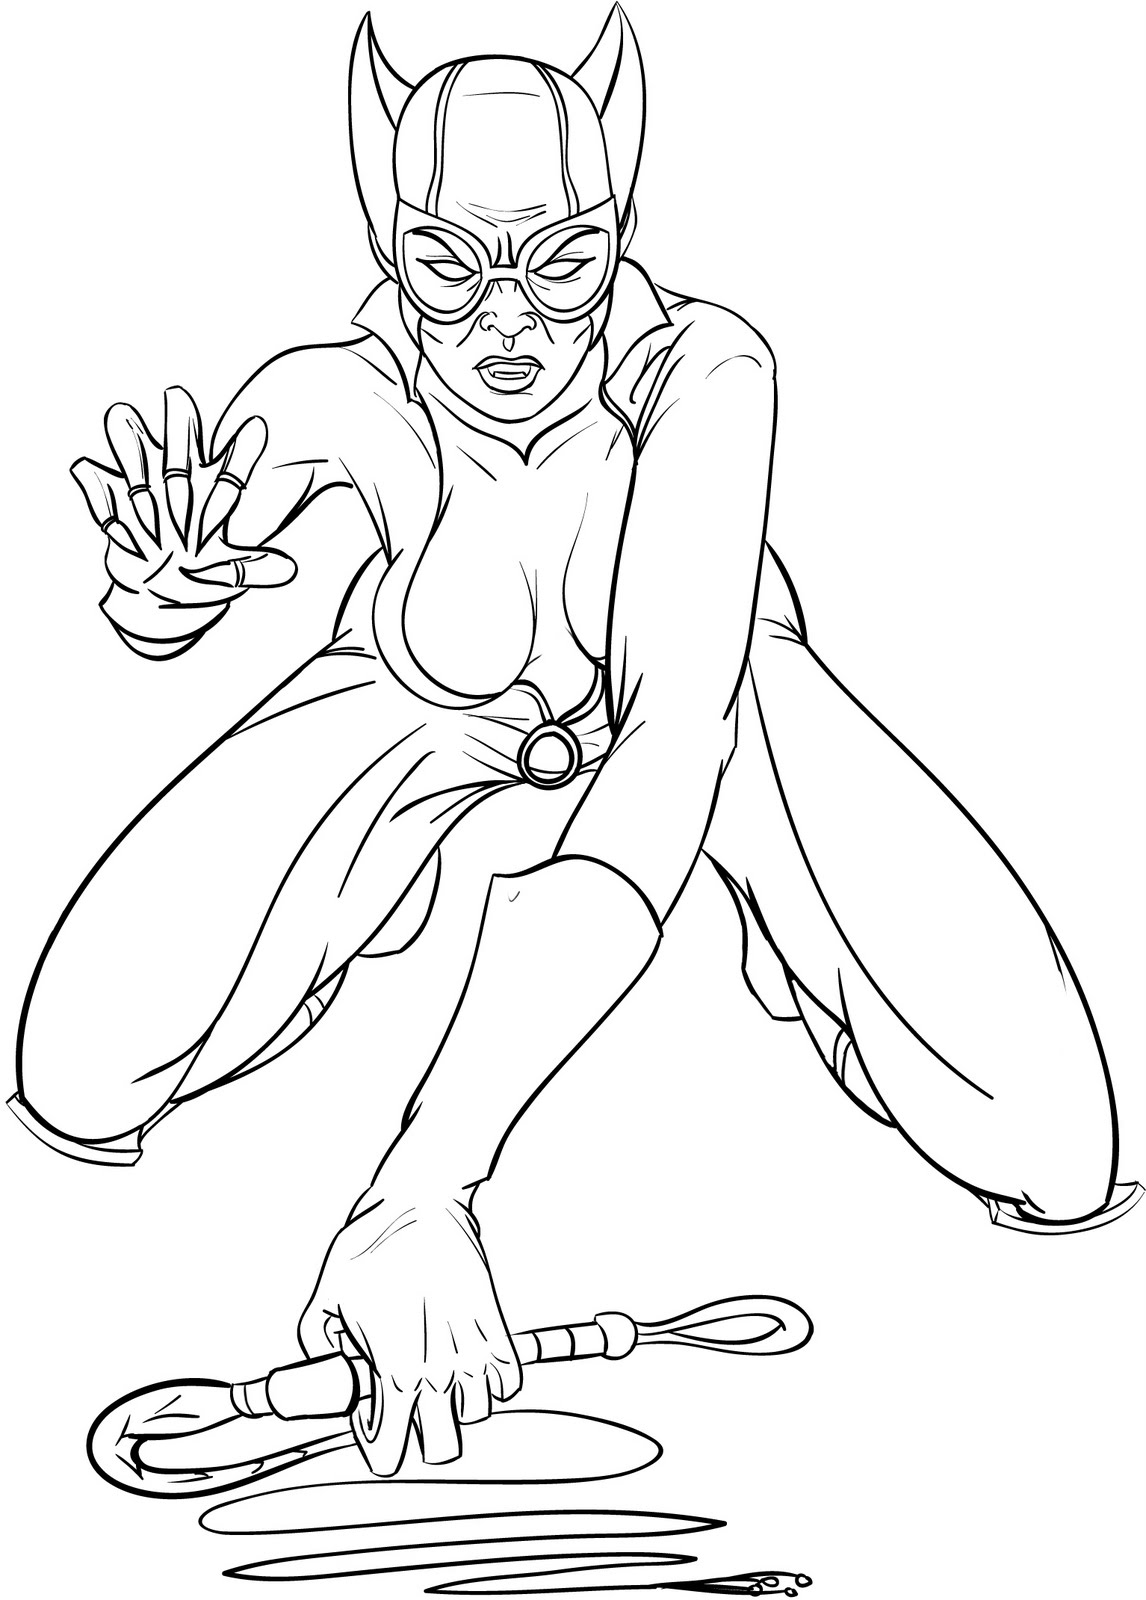 catwoman colouring pages catwoman coloring pages to download and print for free pages colouring catwoman